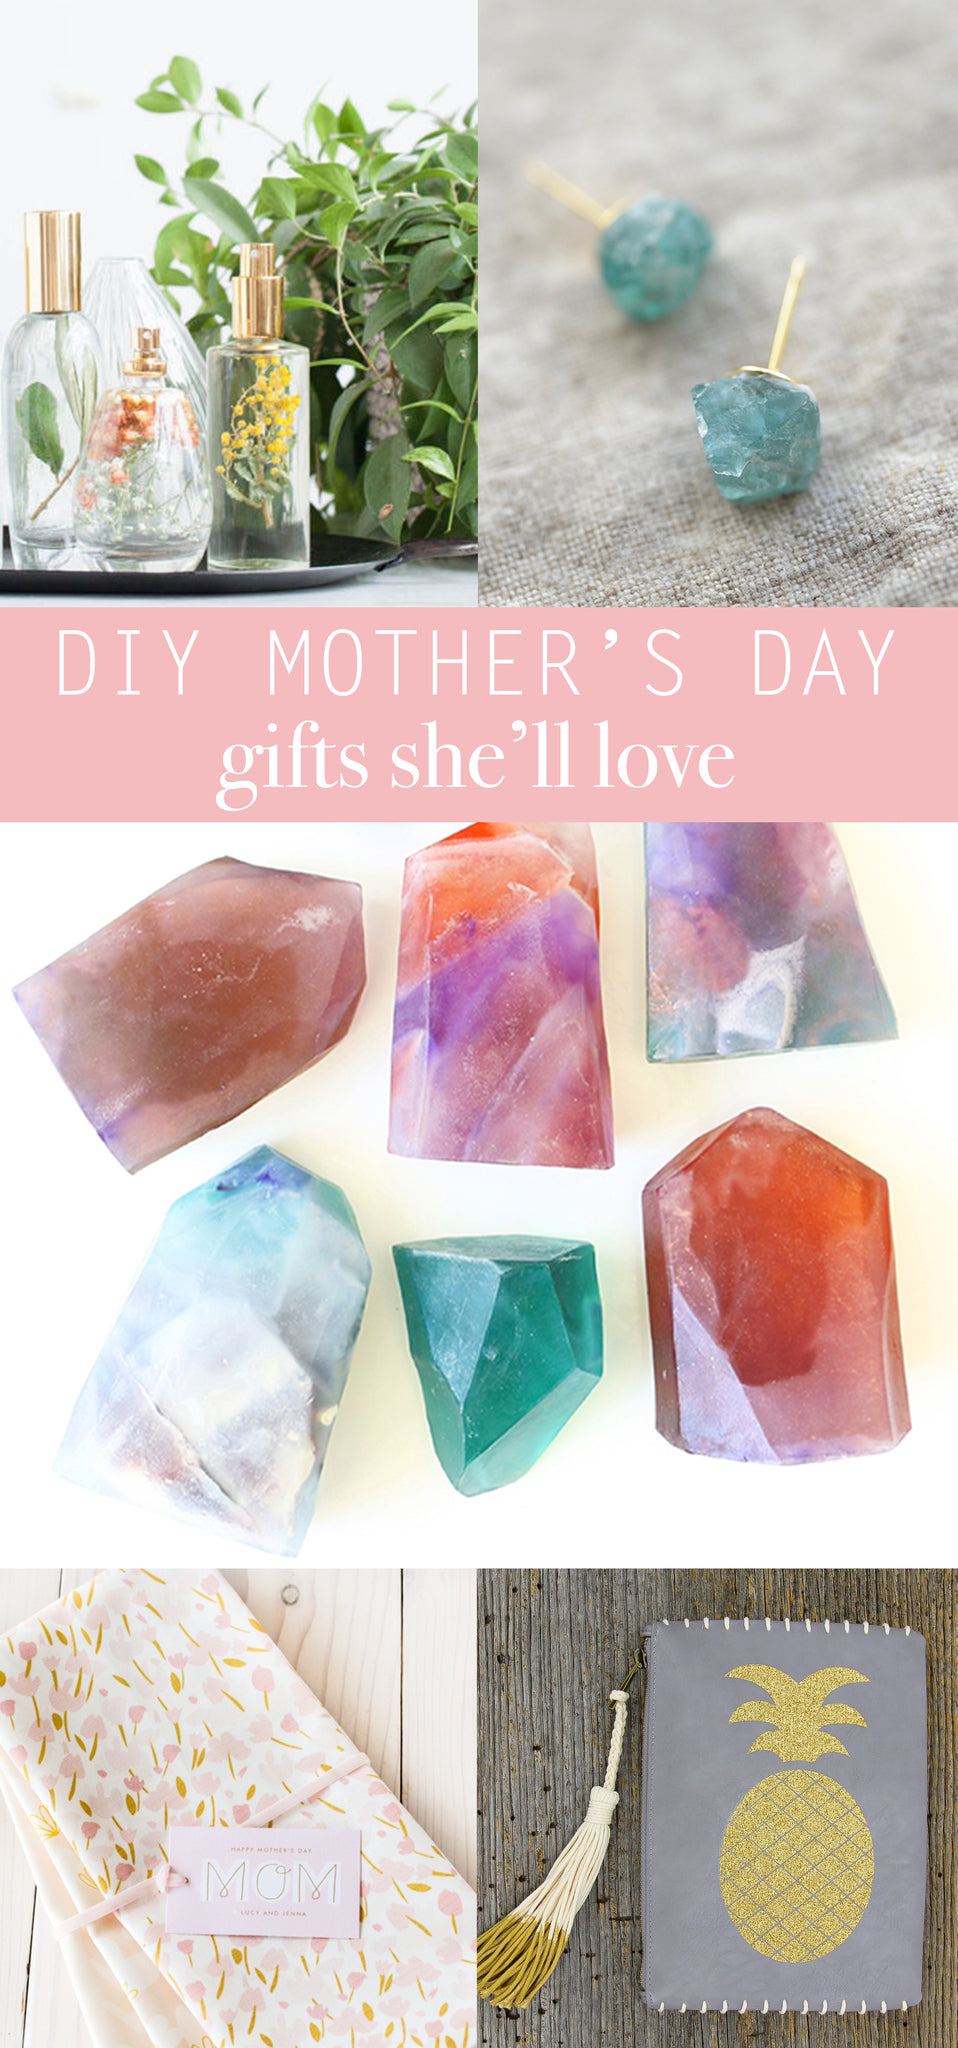 DIY Mother's Day Gift Ideas - Handmade Gifts for Mom - Pretty Collected